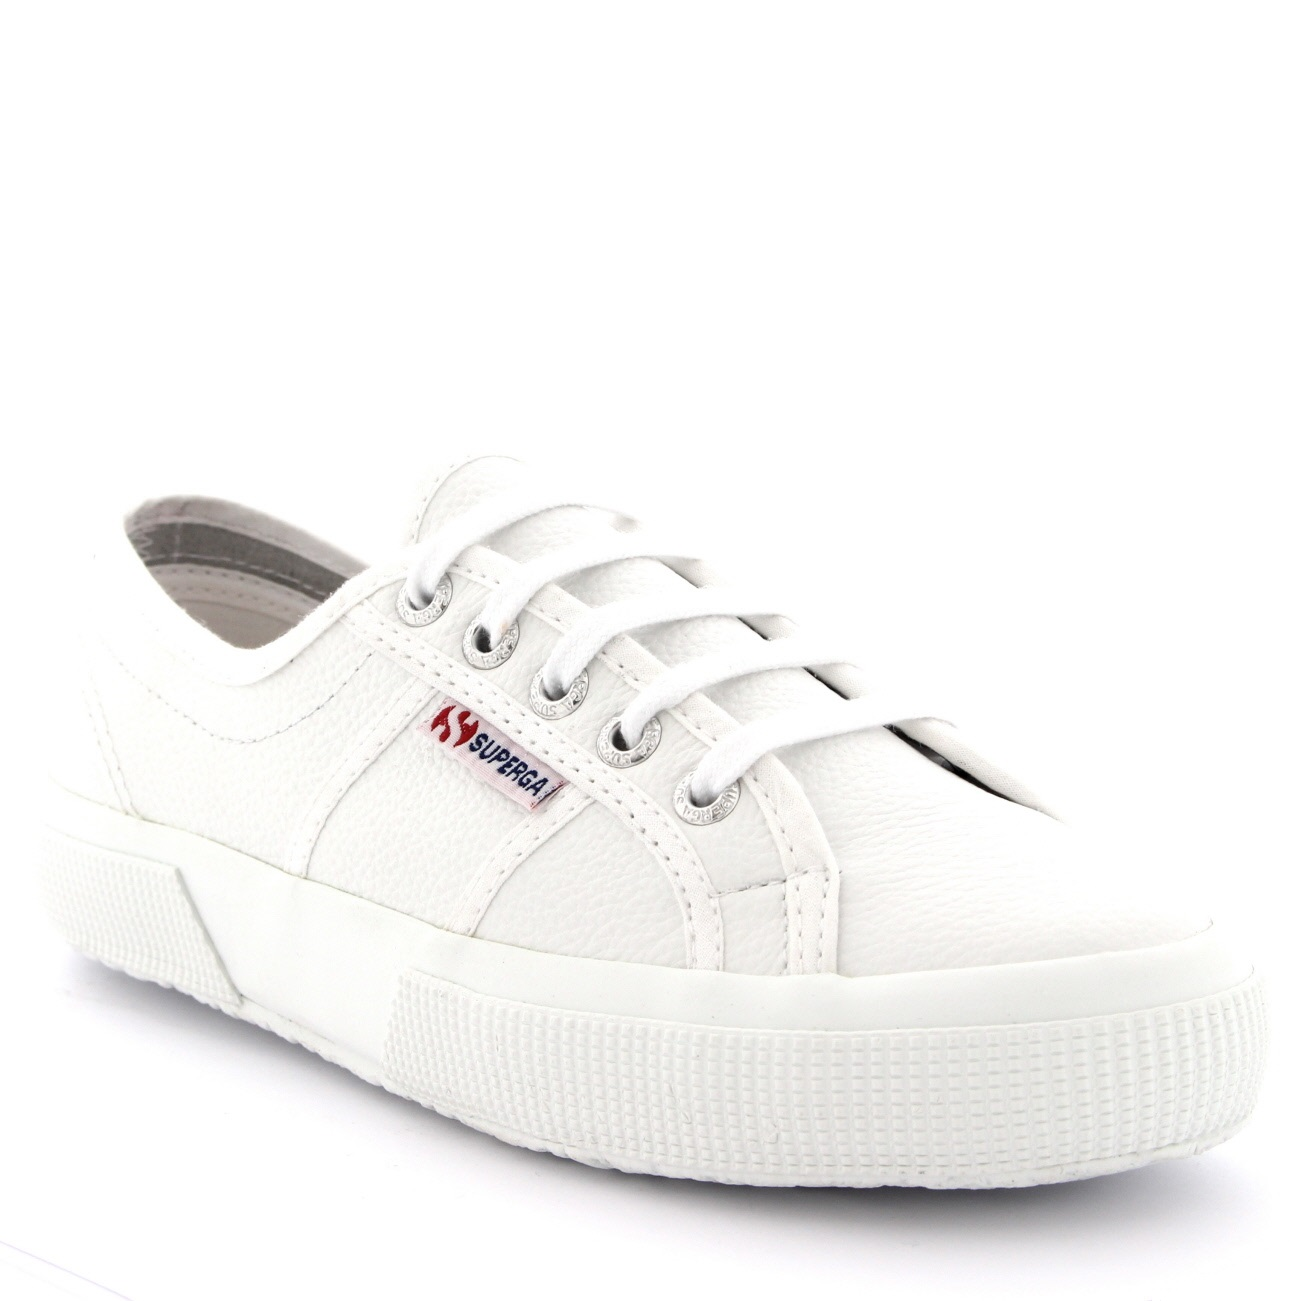 Details about Womens Superga 2750 Efglu Lace Up Leather Low Top White  Casual Trainers UK 3-9 e635f45fd